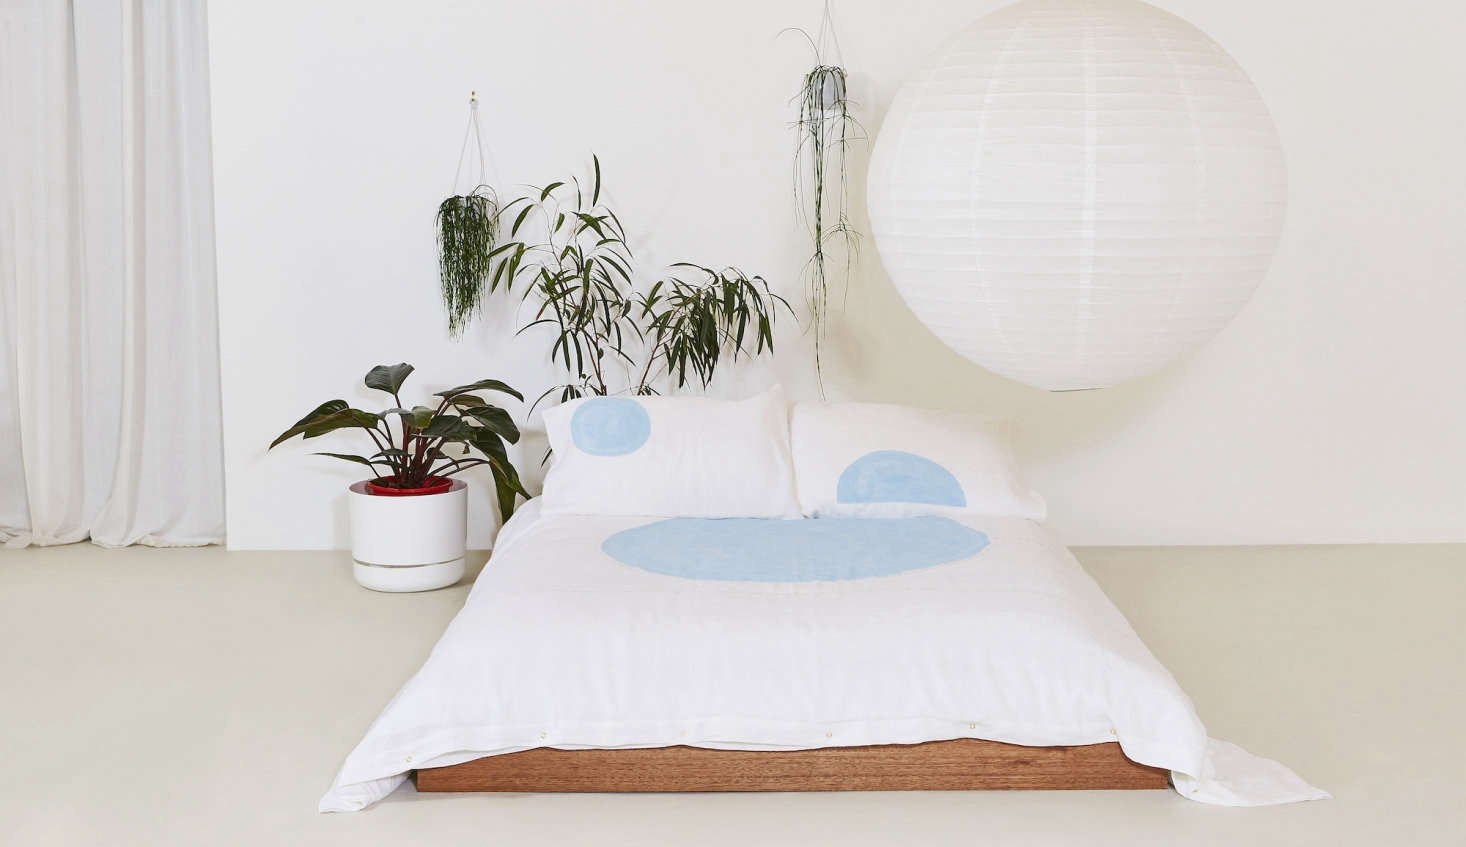 The Big Dreams Duvet Cover in French blue.